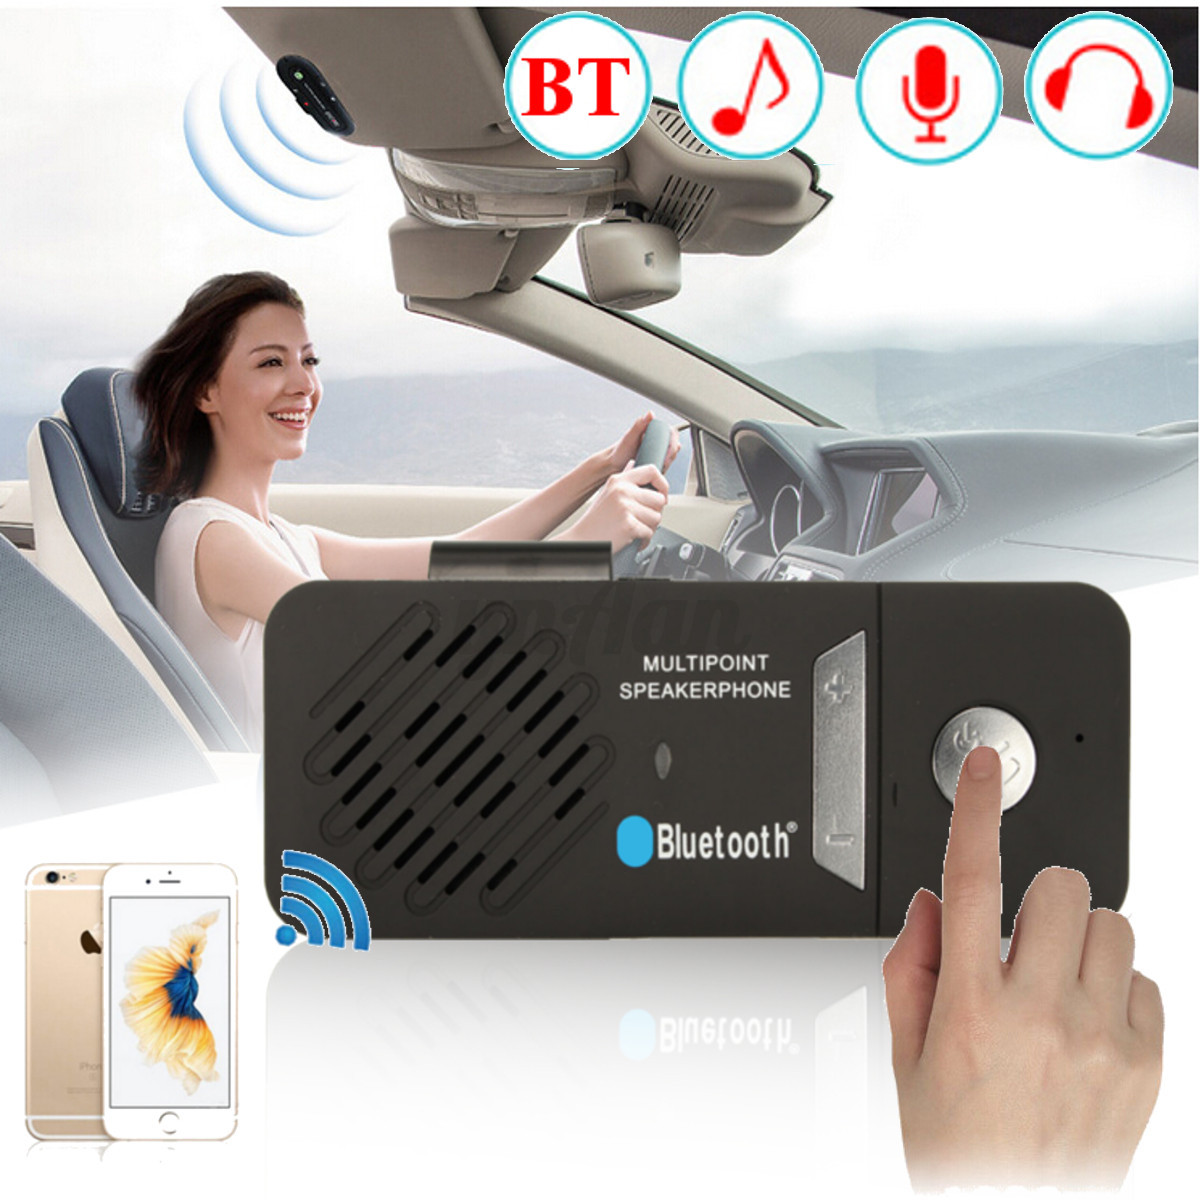 Manos Libres Telefono Coche Bluetooth Multipoint Wireless Handsfree Car Sun Visor